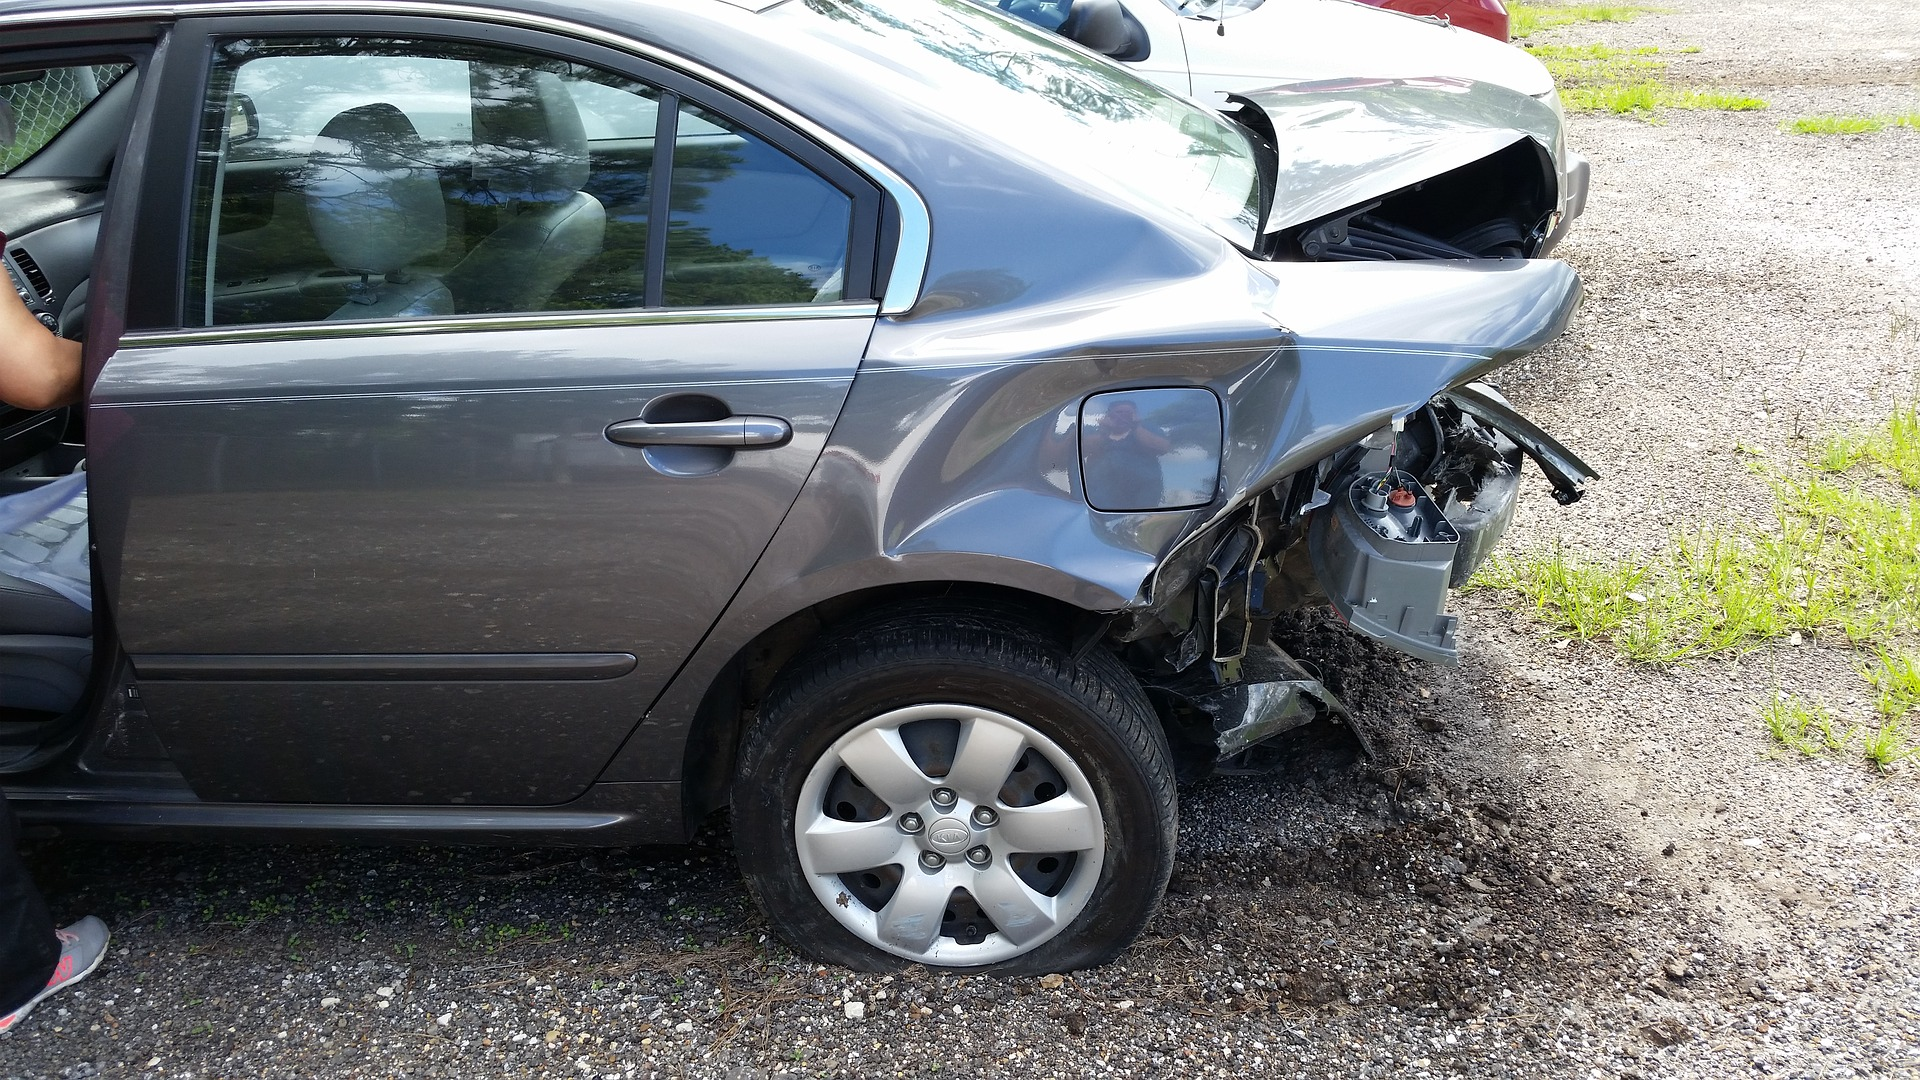 7 things you should not do after an auto accident